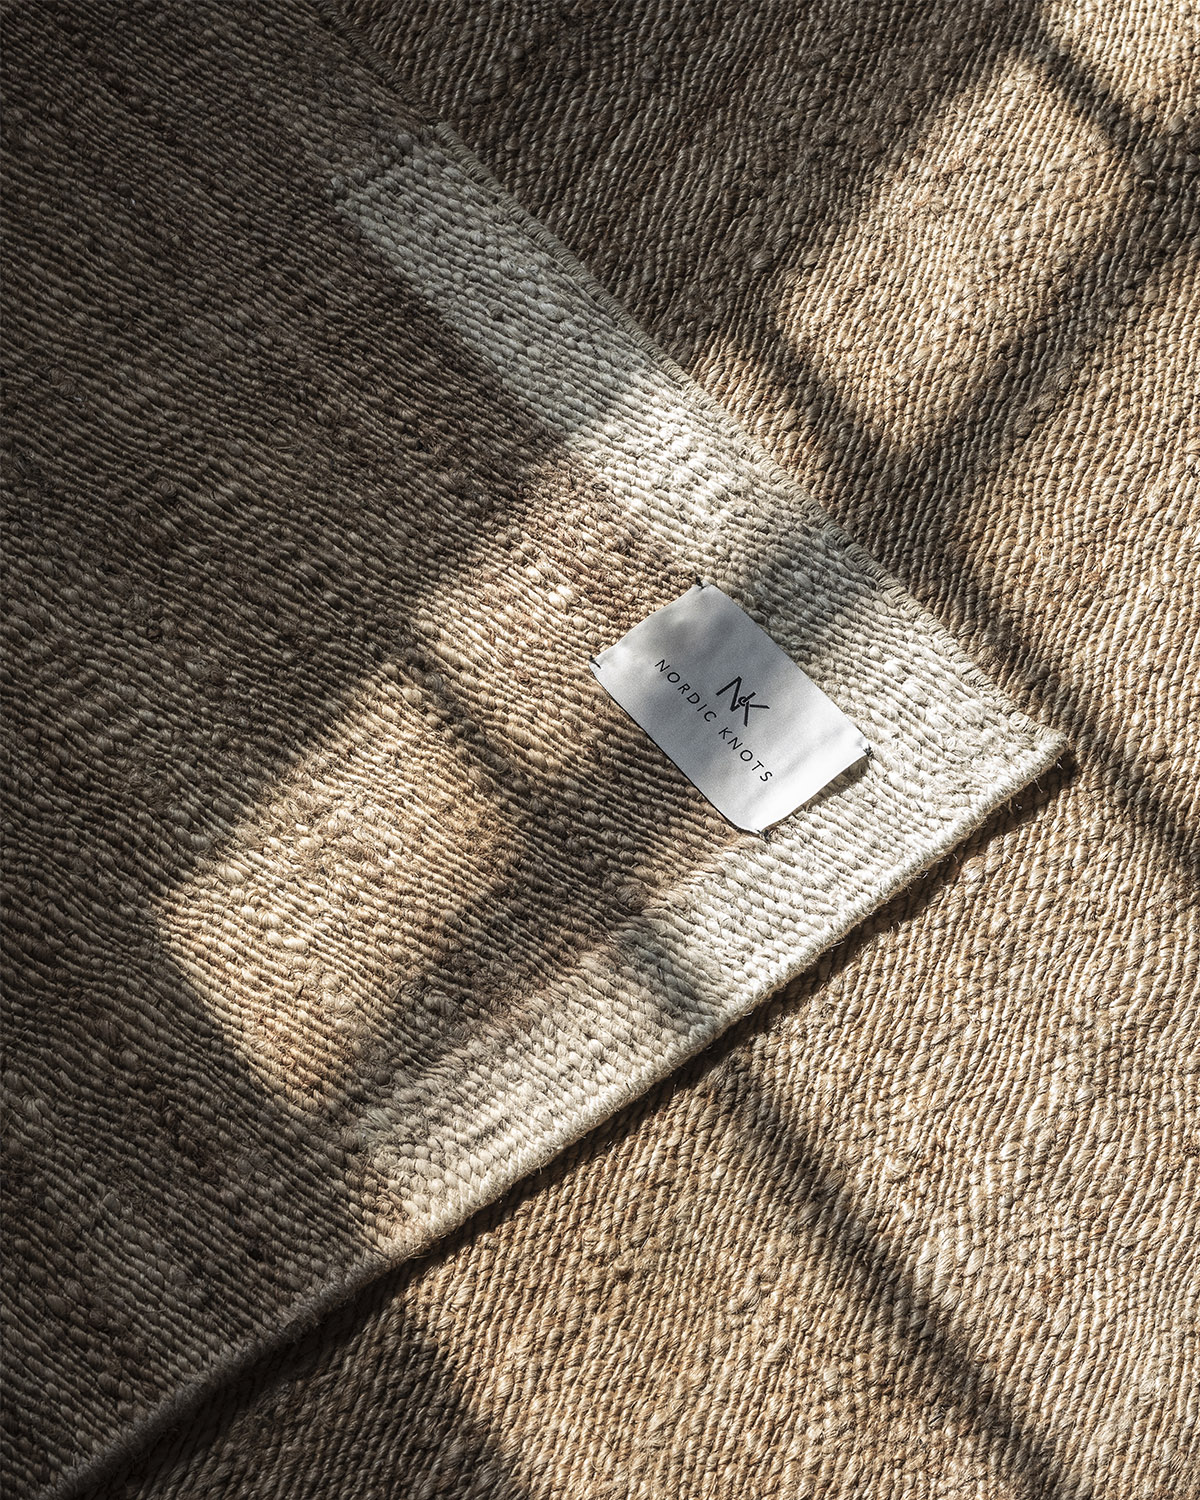 Close up of Jute Edge Cream, showing of the texture of the jute material.